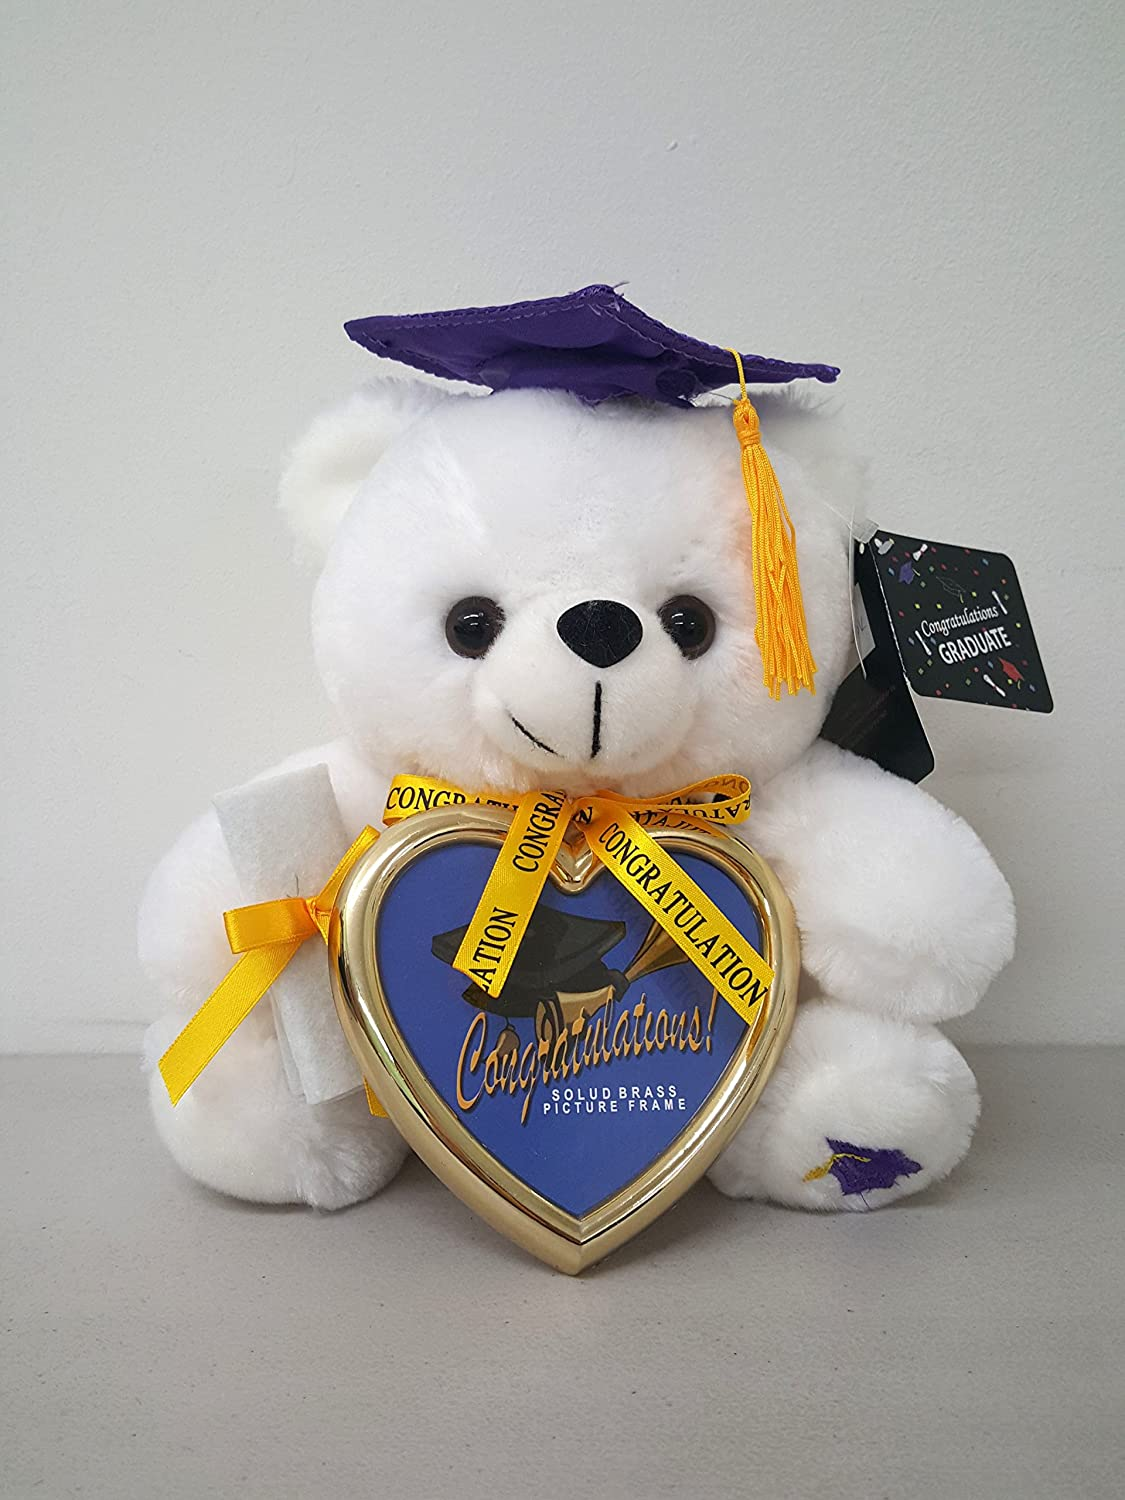 8 White Graduation Plush Teddy Bear with Blue Cap and Diploma in Hand Comes with a Heart Shaped Picture Frame Black